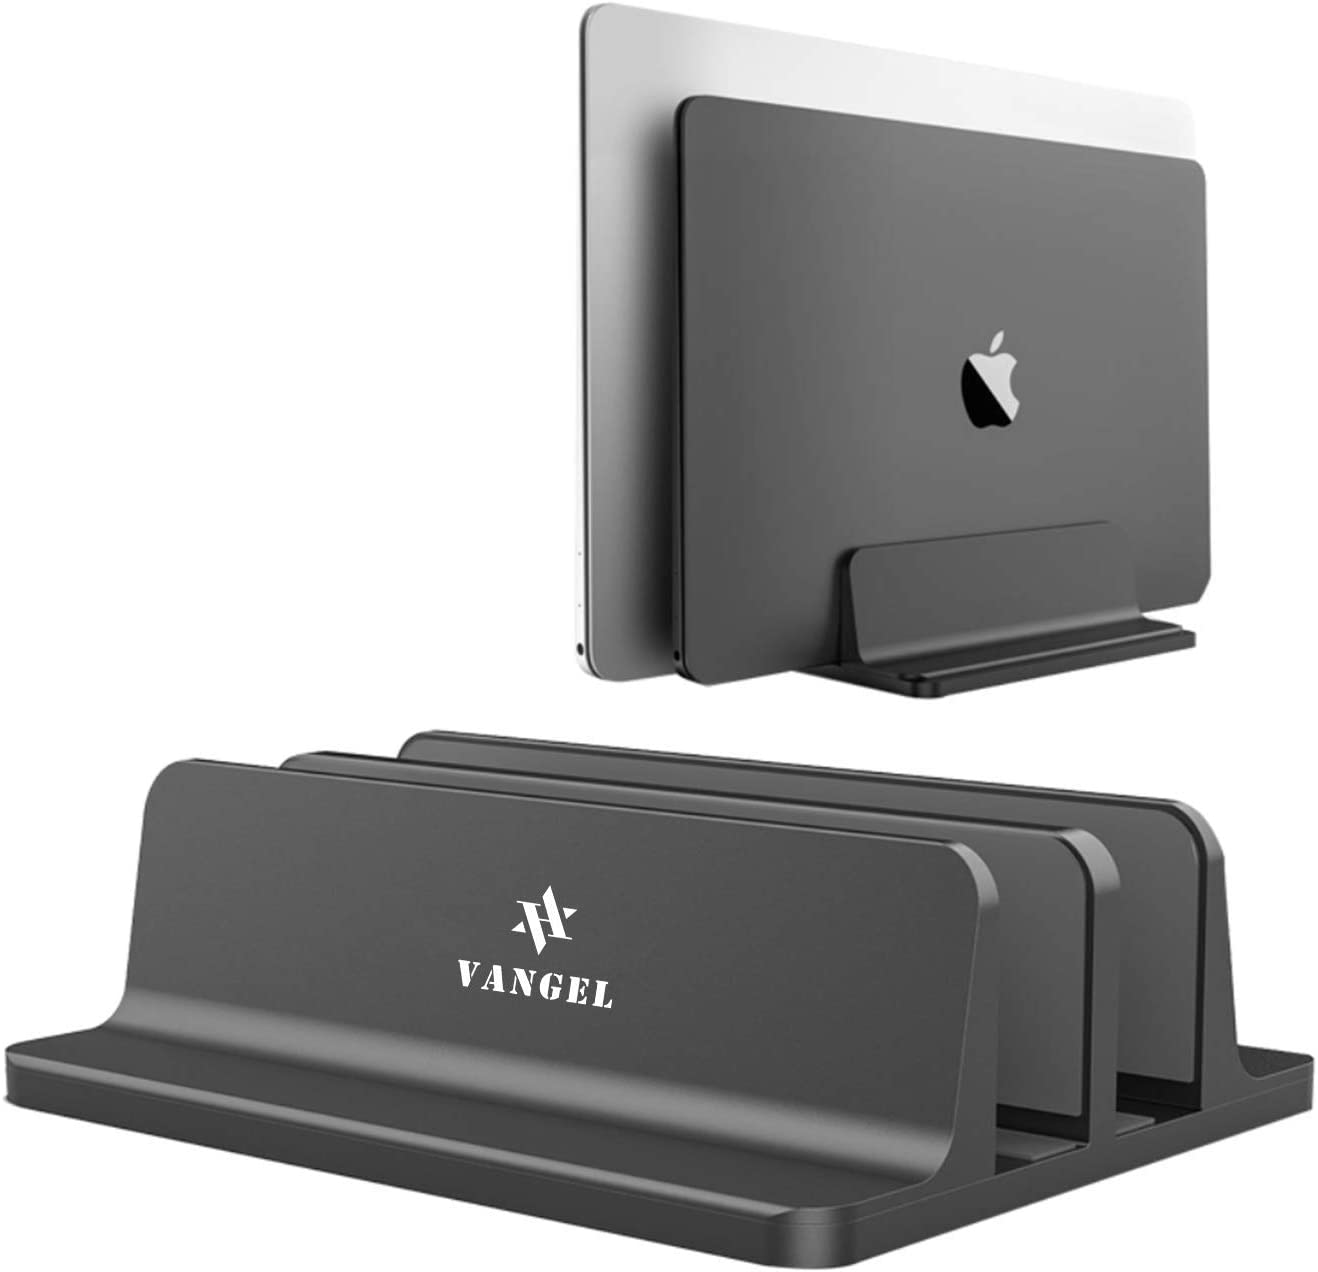 Aluminum Vertical Laptop Stand - VANGEL Double Desktop Stand Holder with Adjustable Docks (up to 17.3 inches) - Desktop Organizer for All Laptop, MacBook, Tablet - Anti-Slip and Anti-Scratch - Black